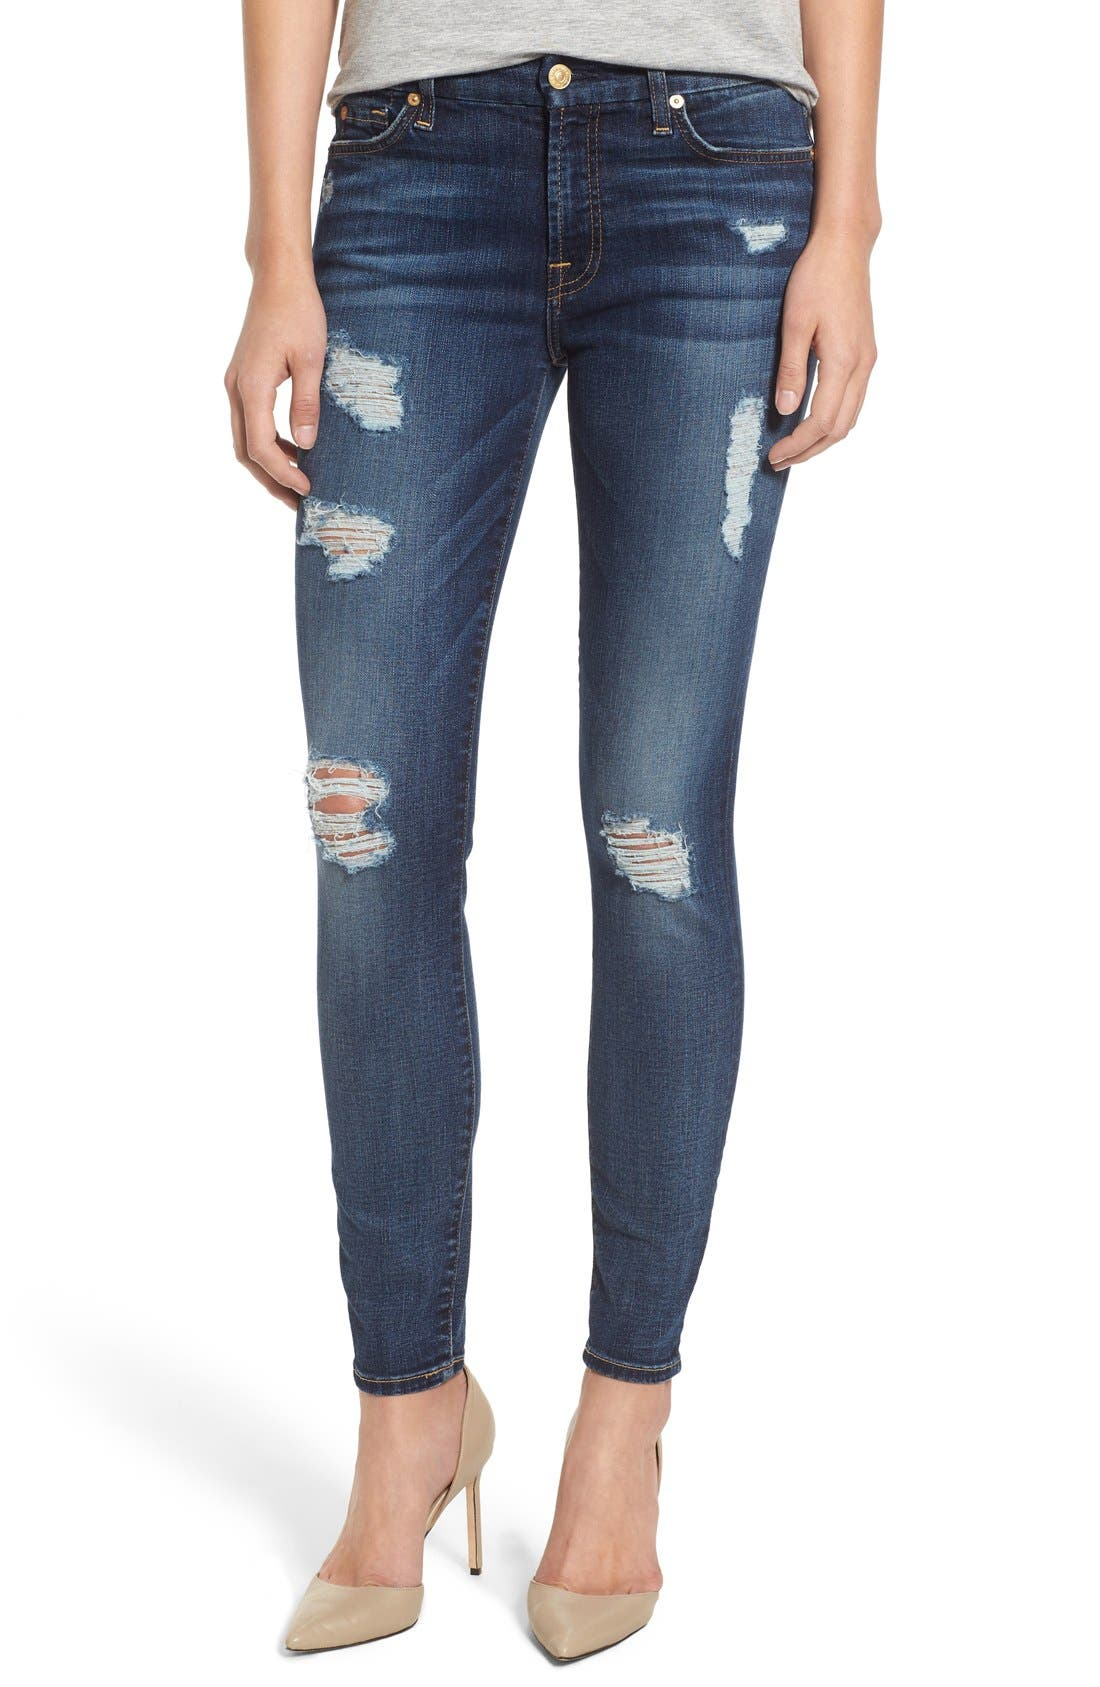 Alternate Image 1 Selected - 7 For All Mankind® Destroyed Skinny Jeans (Dark Vintage Blue)